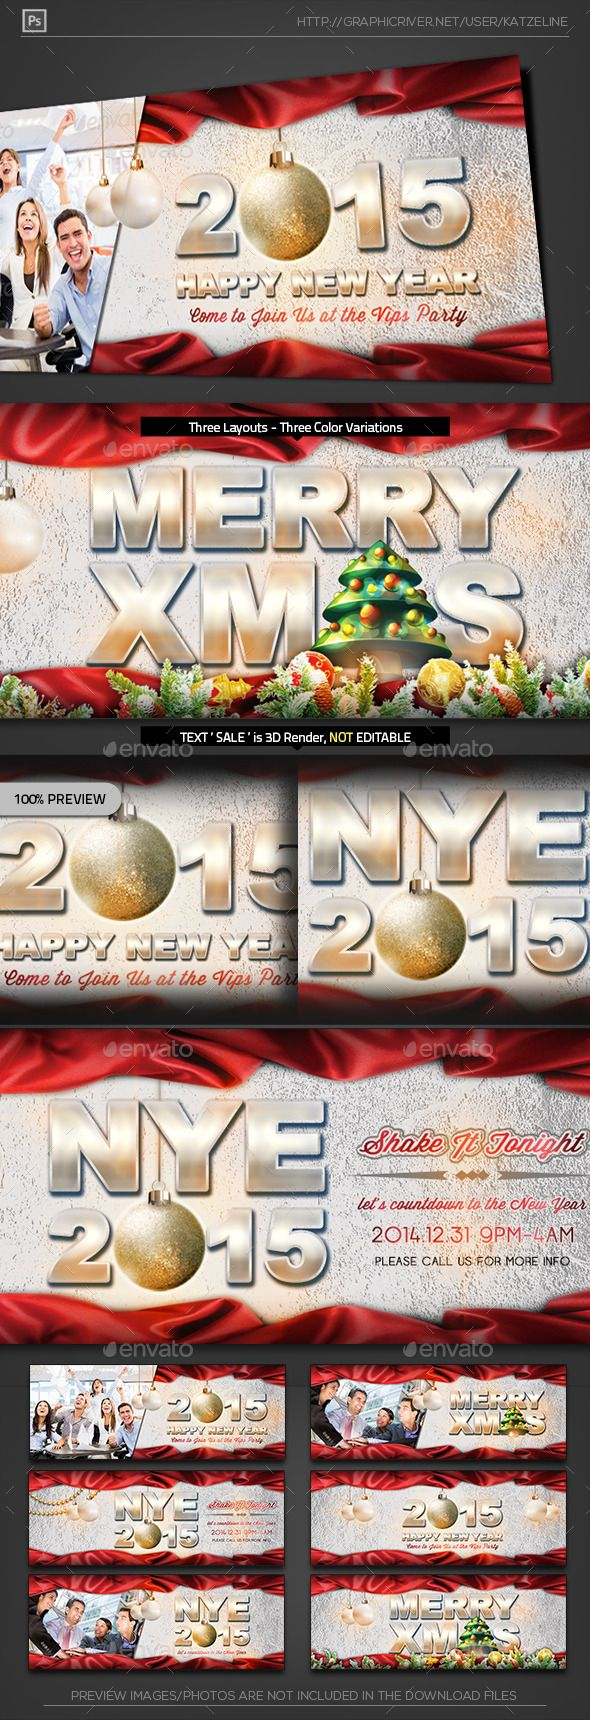 Christmas New Year Eve FB Timeline Cover